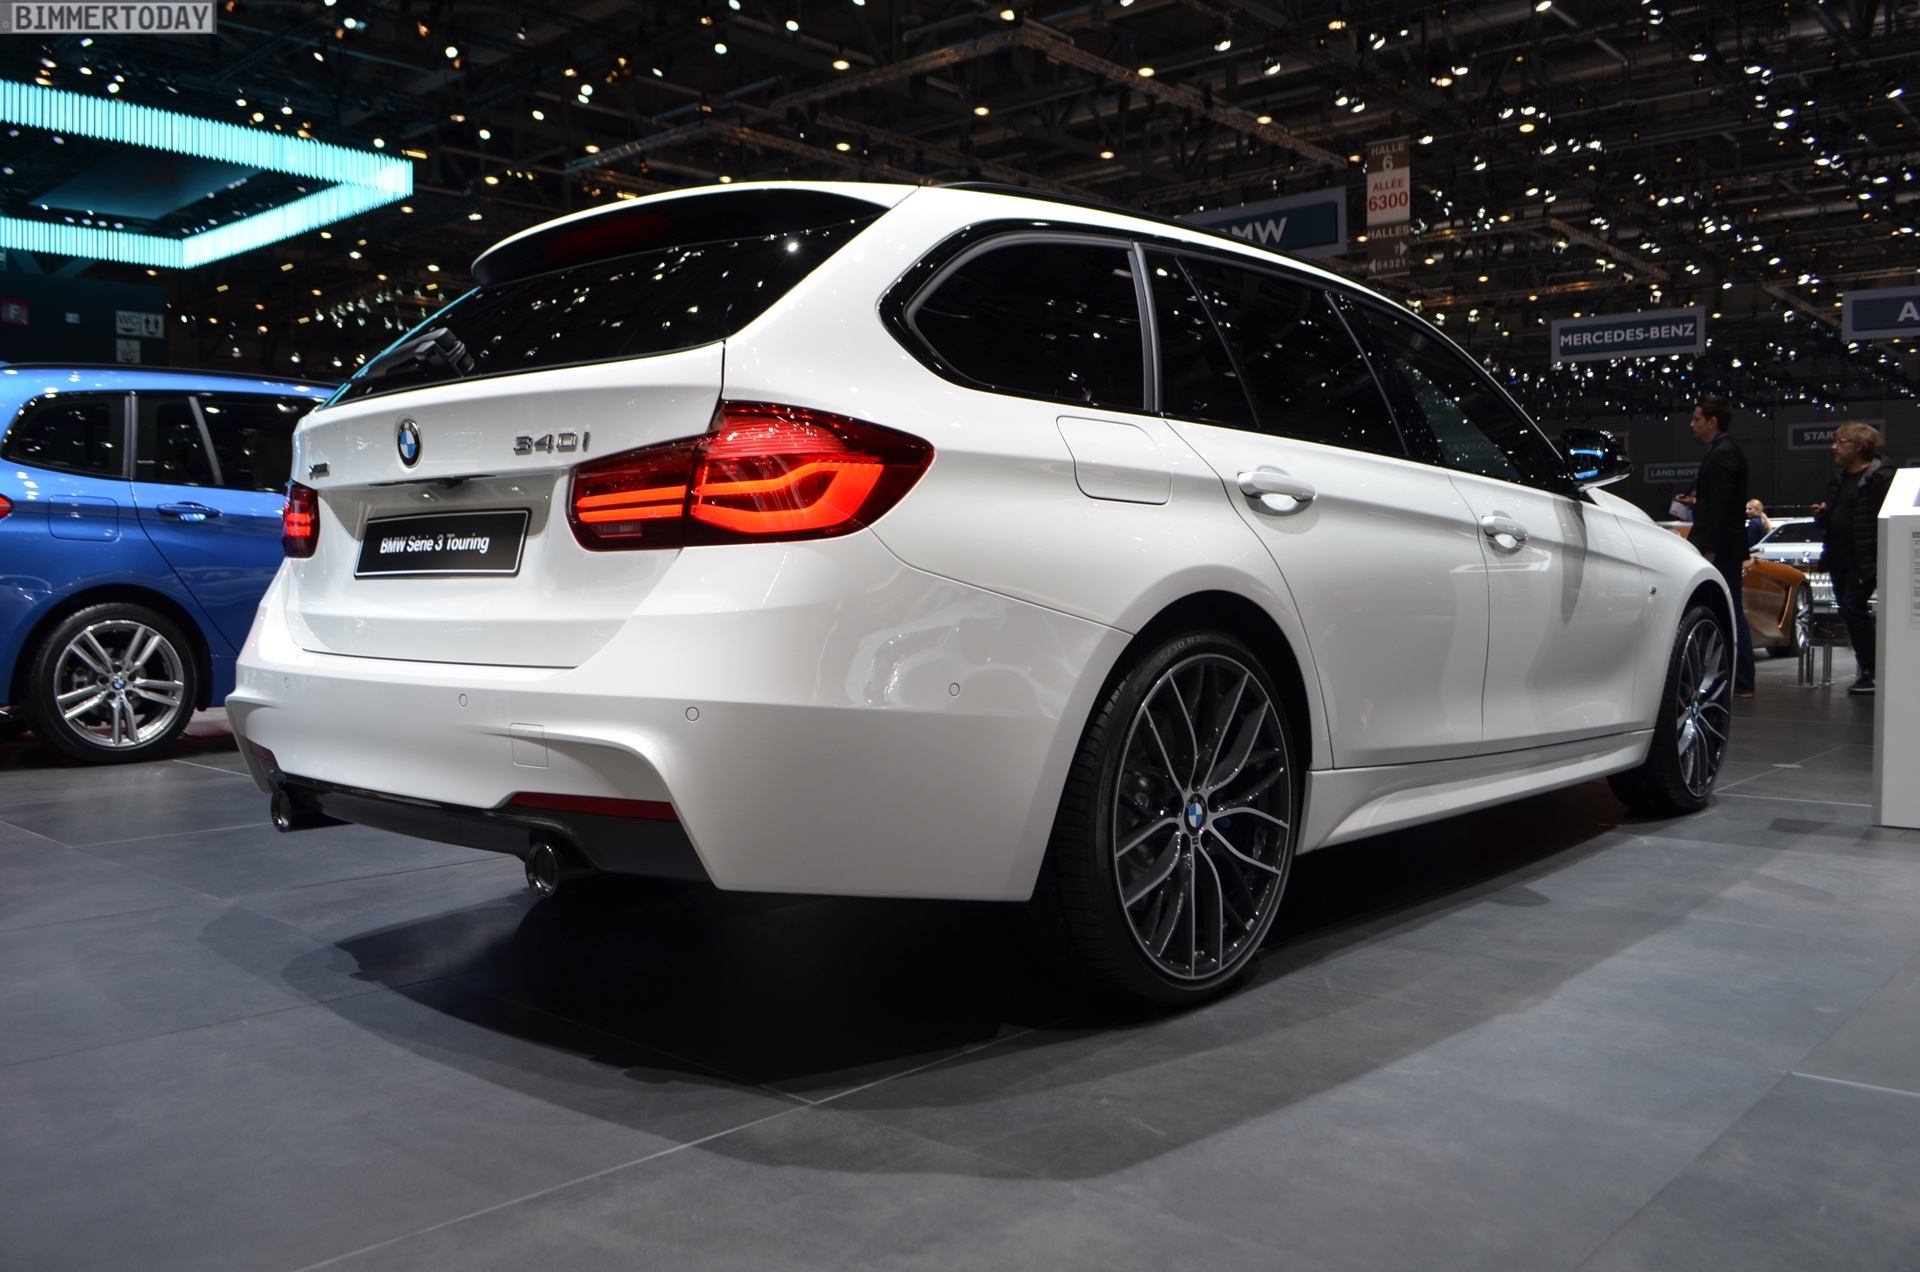 Genf 2018 Live Fotos Bmw 340i Touring Edition M Sport Shadow